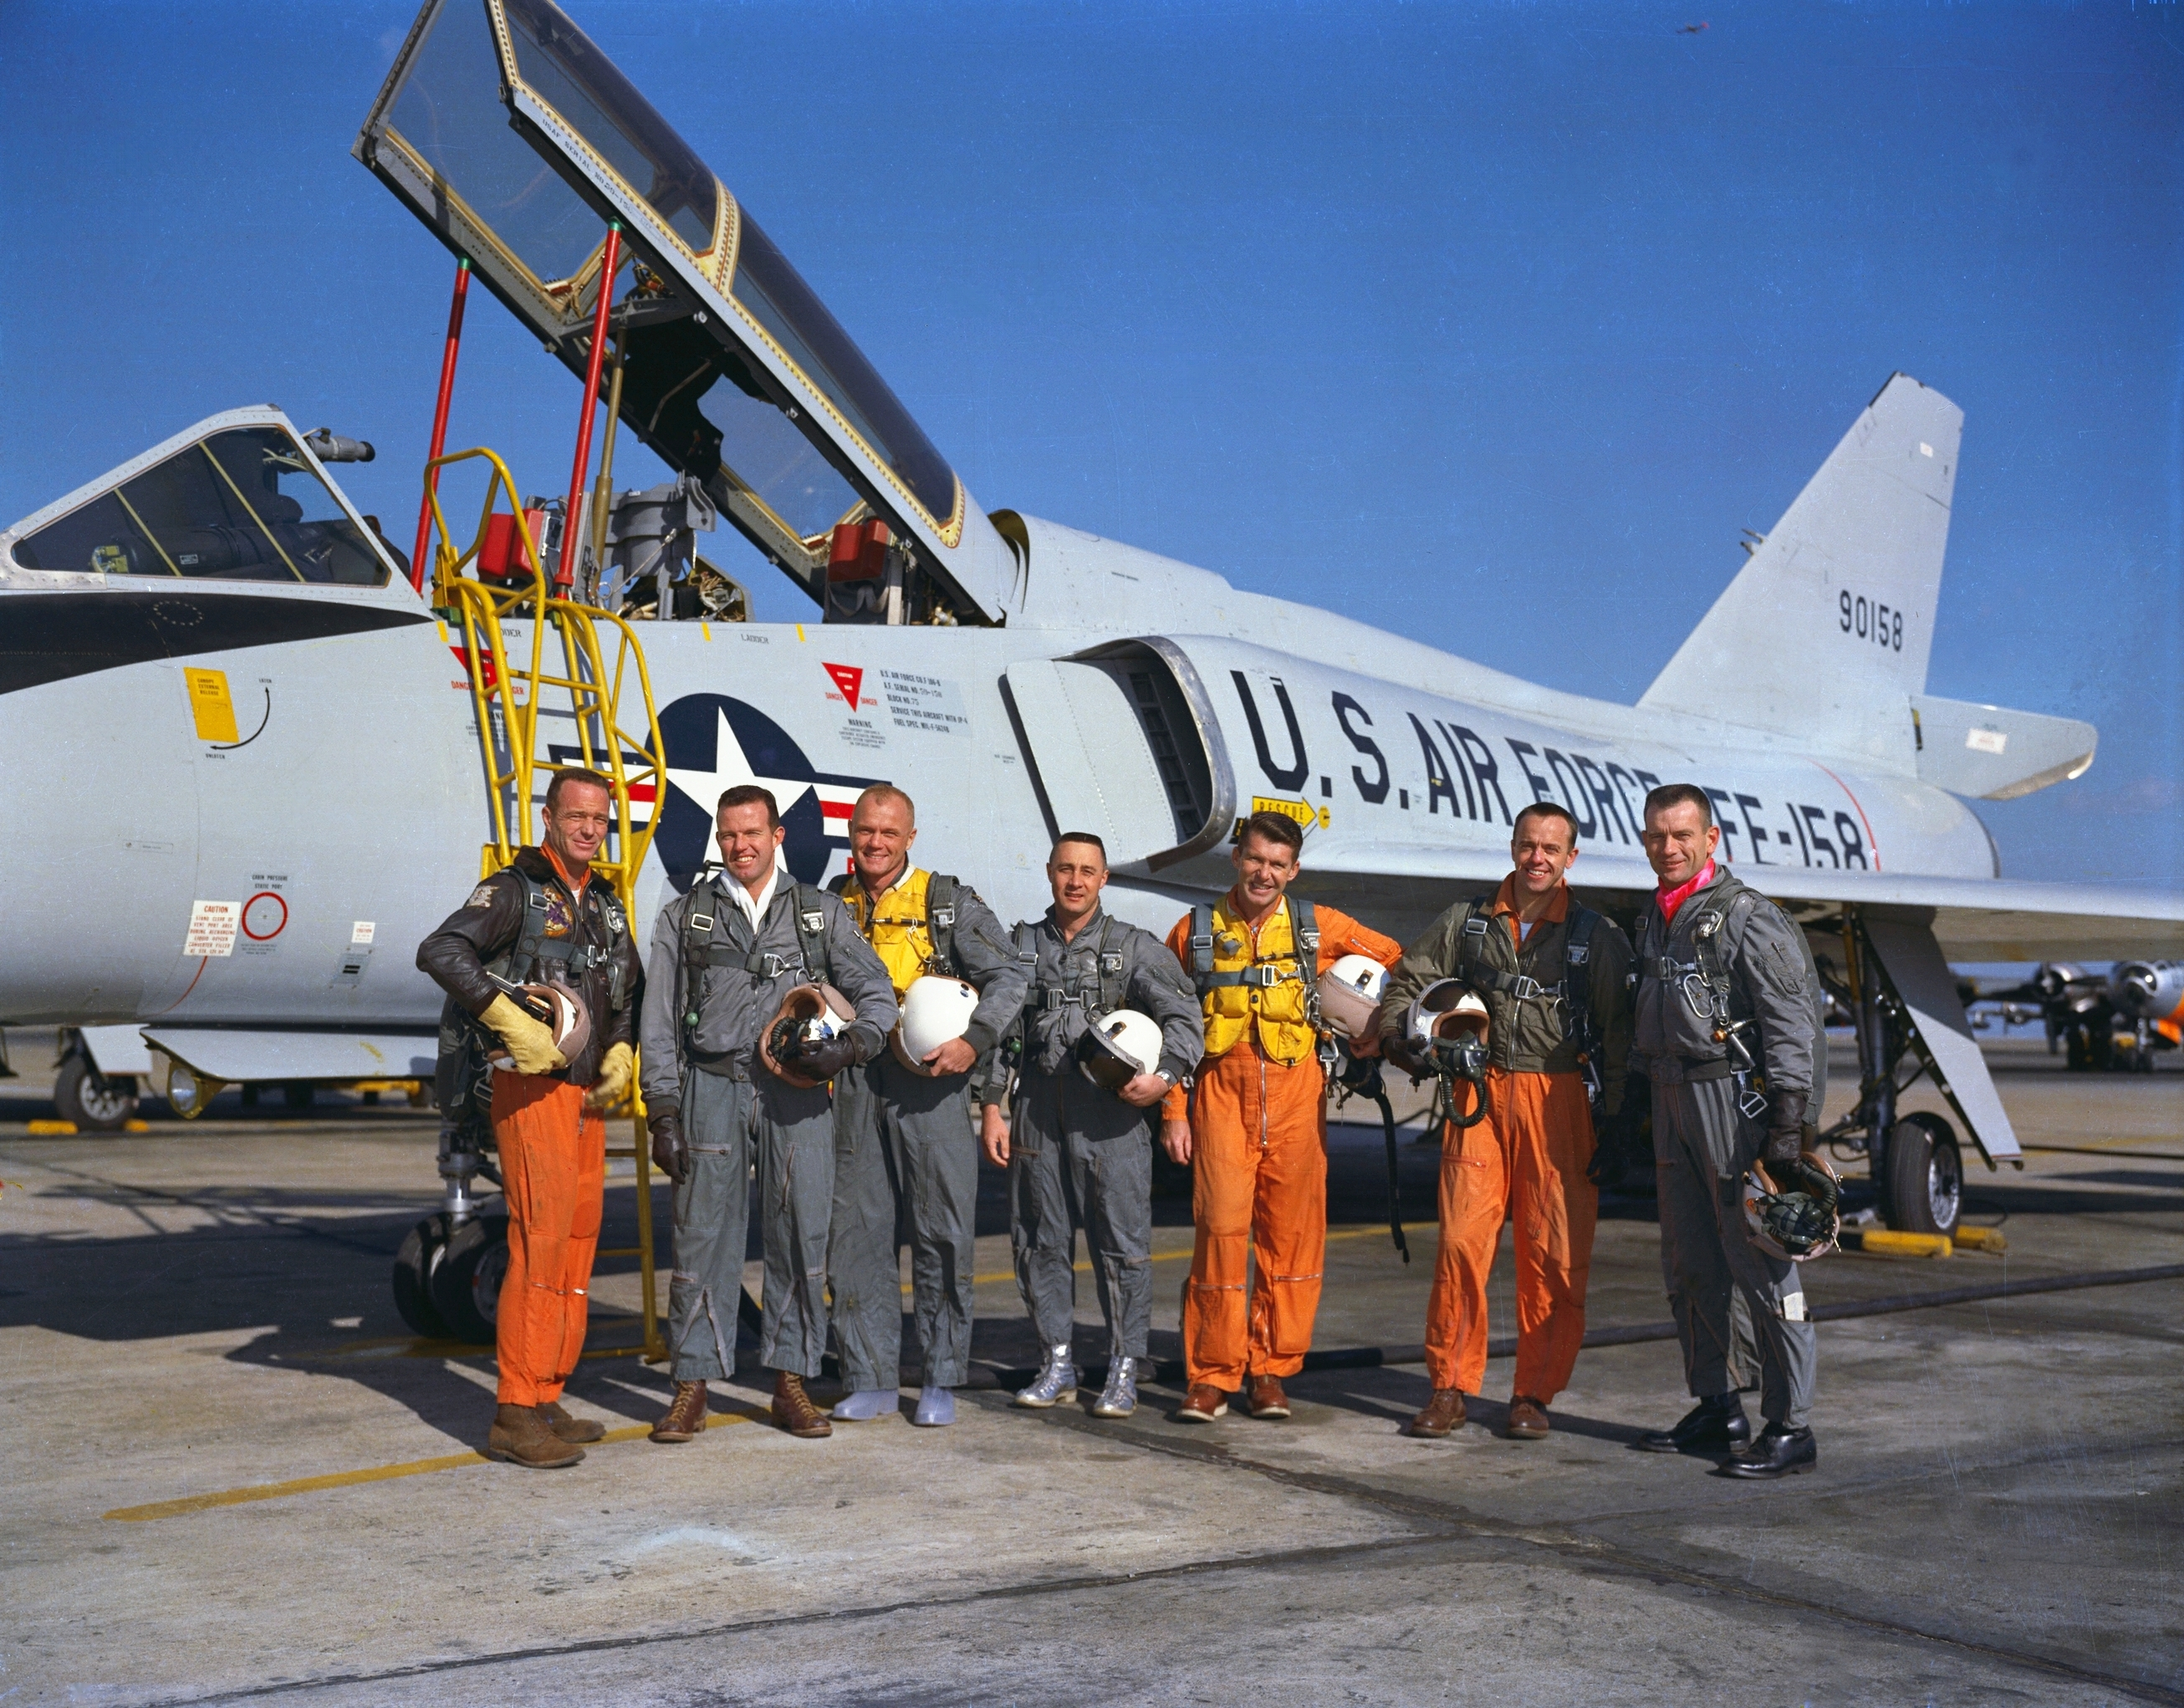 The Mercury Seven astronauts with a Convair F-106B Delta Dart aircraft at Langley Air Force Base. From left to right: Scott Carpenter, Gordon Cooper, John Glenn, Gus Grissom, Wally Schirra, Alan Shepard and Deke Slayton. Photo taken on January 20, 1961.